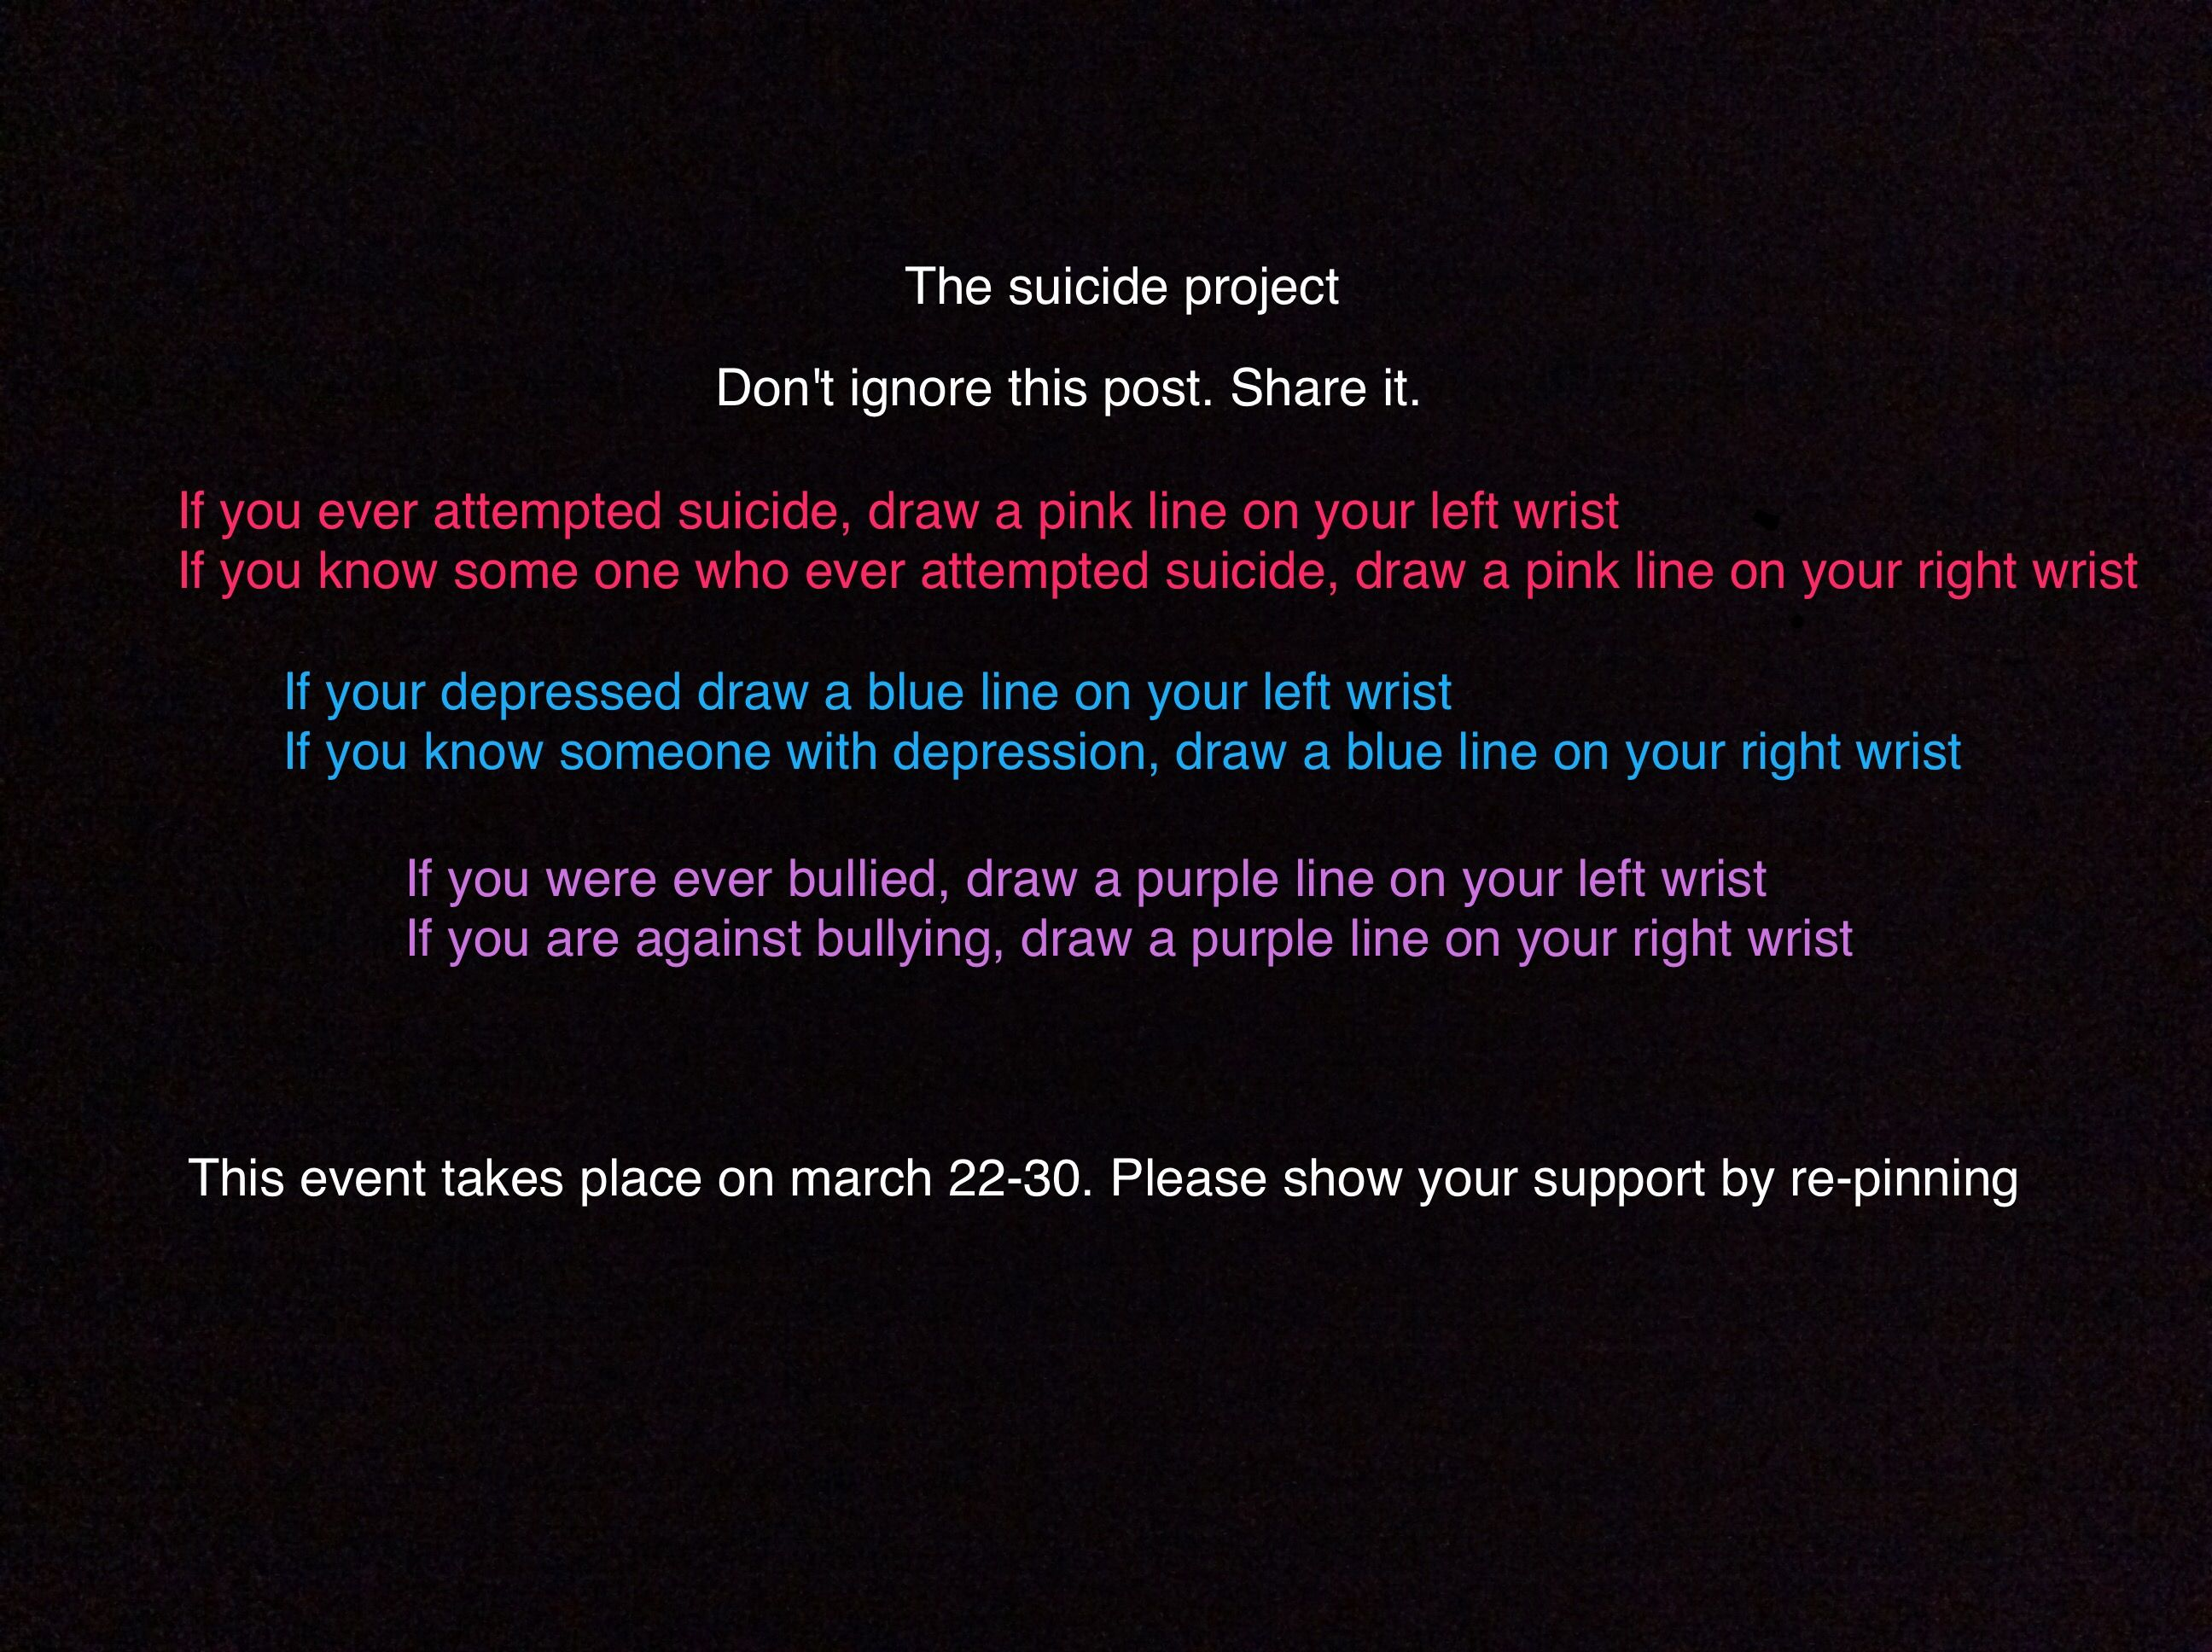 Doing this tomorrow ! Save lives , help bring awareness to depression , and help prevent bullying. Life is short so enjoy it